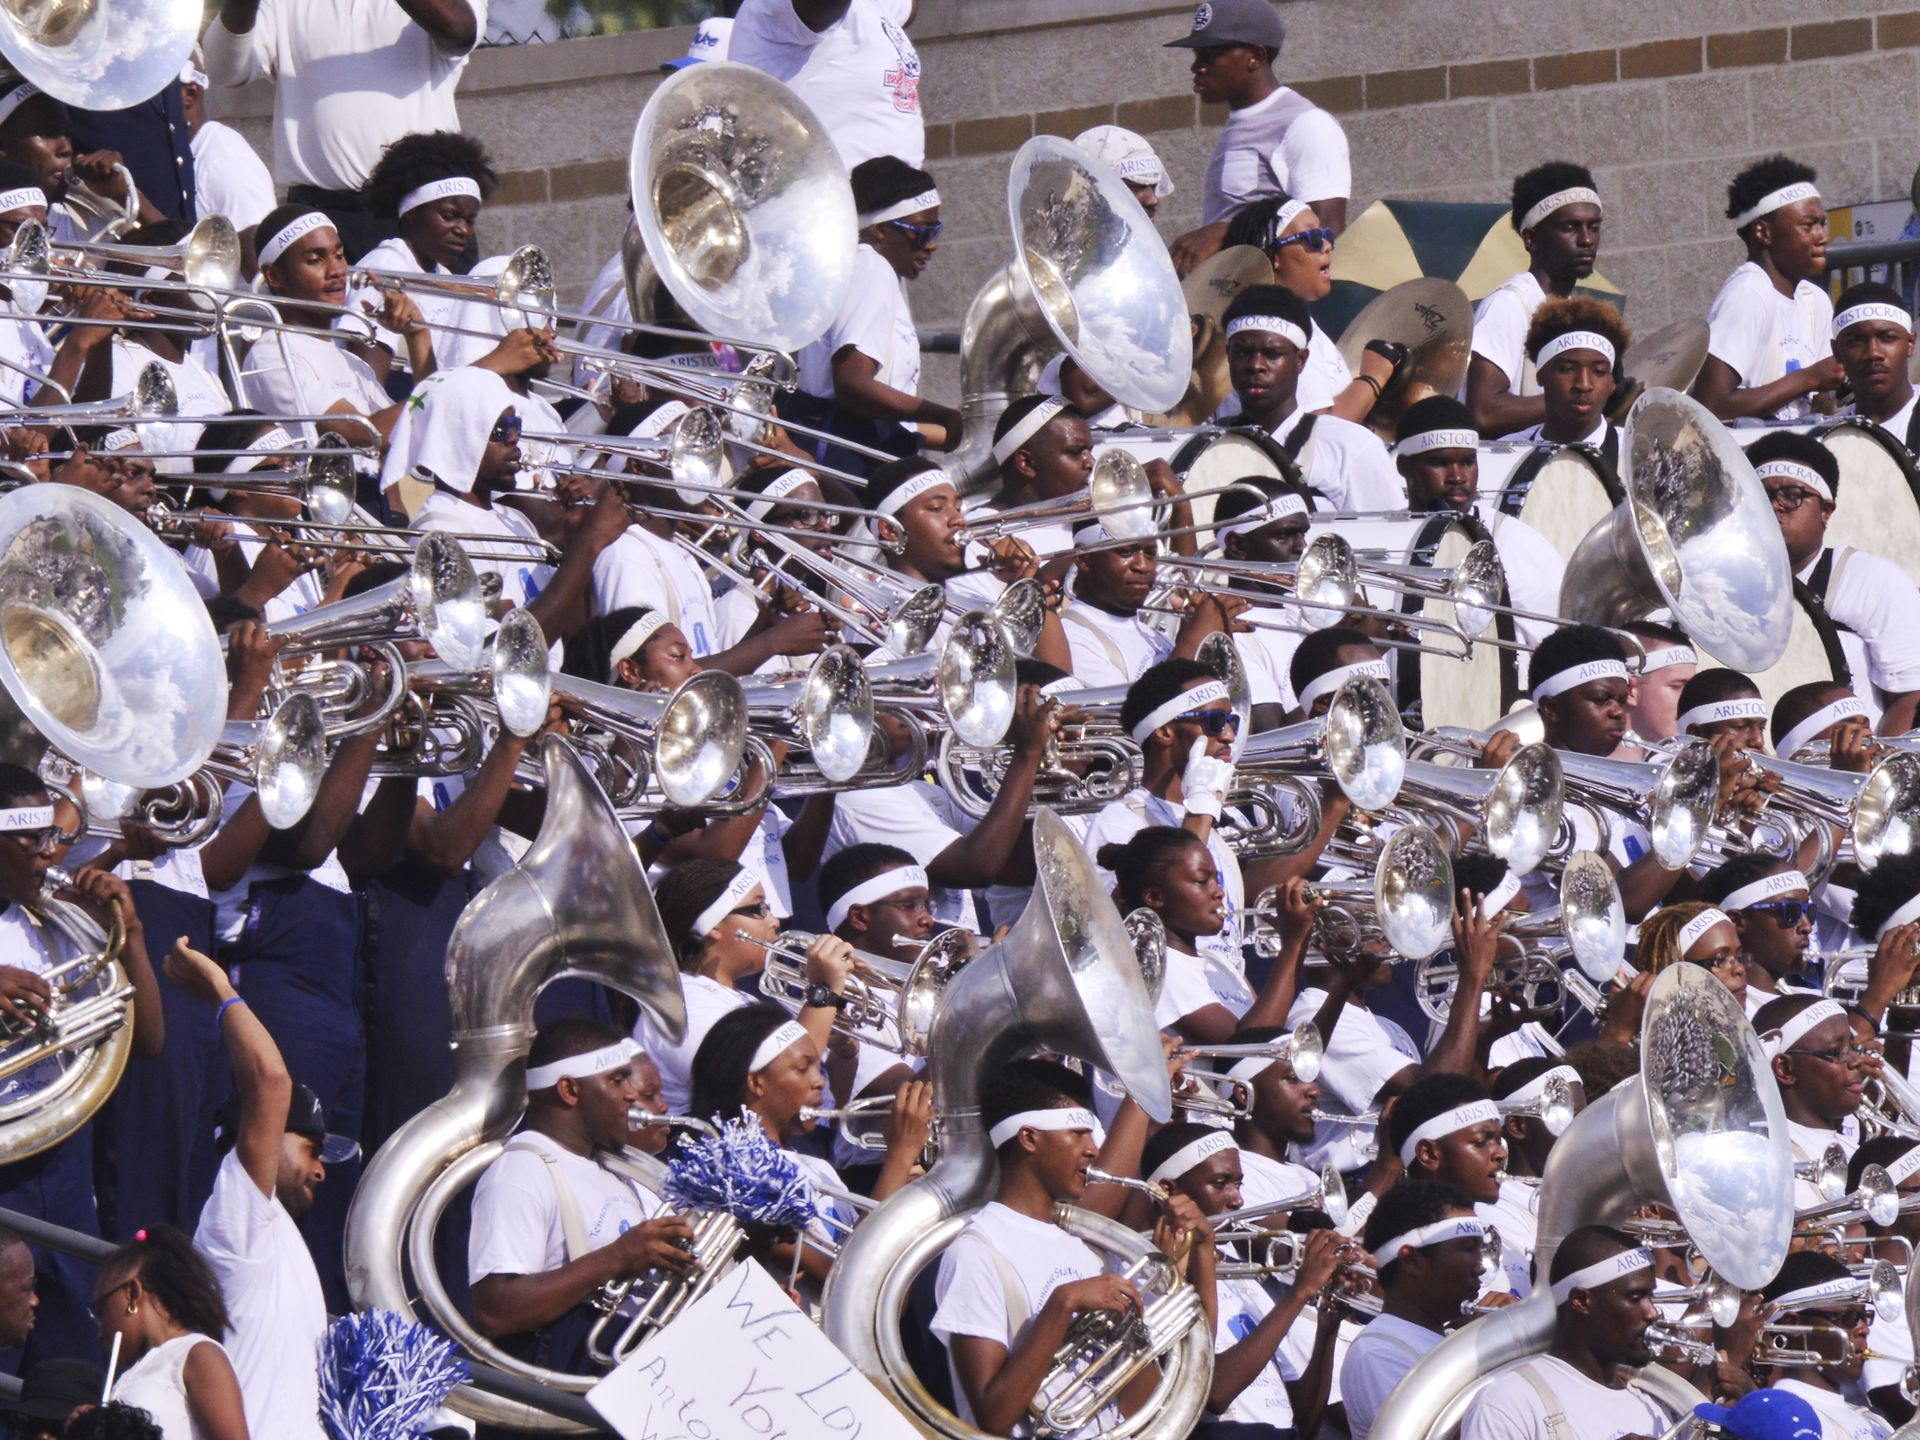 Tennessee State marching band plays during the ga...